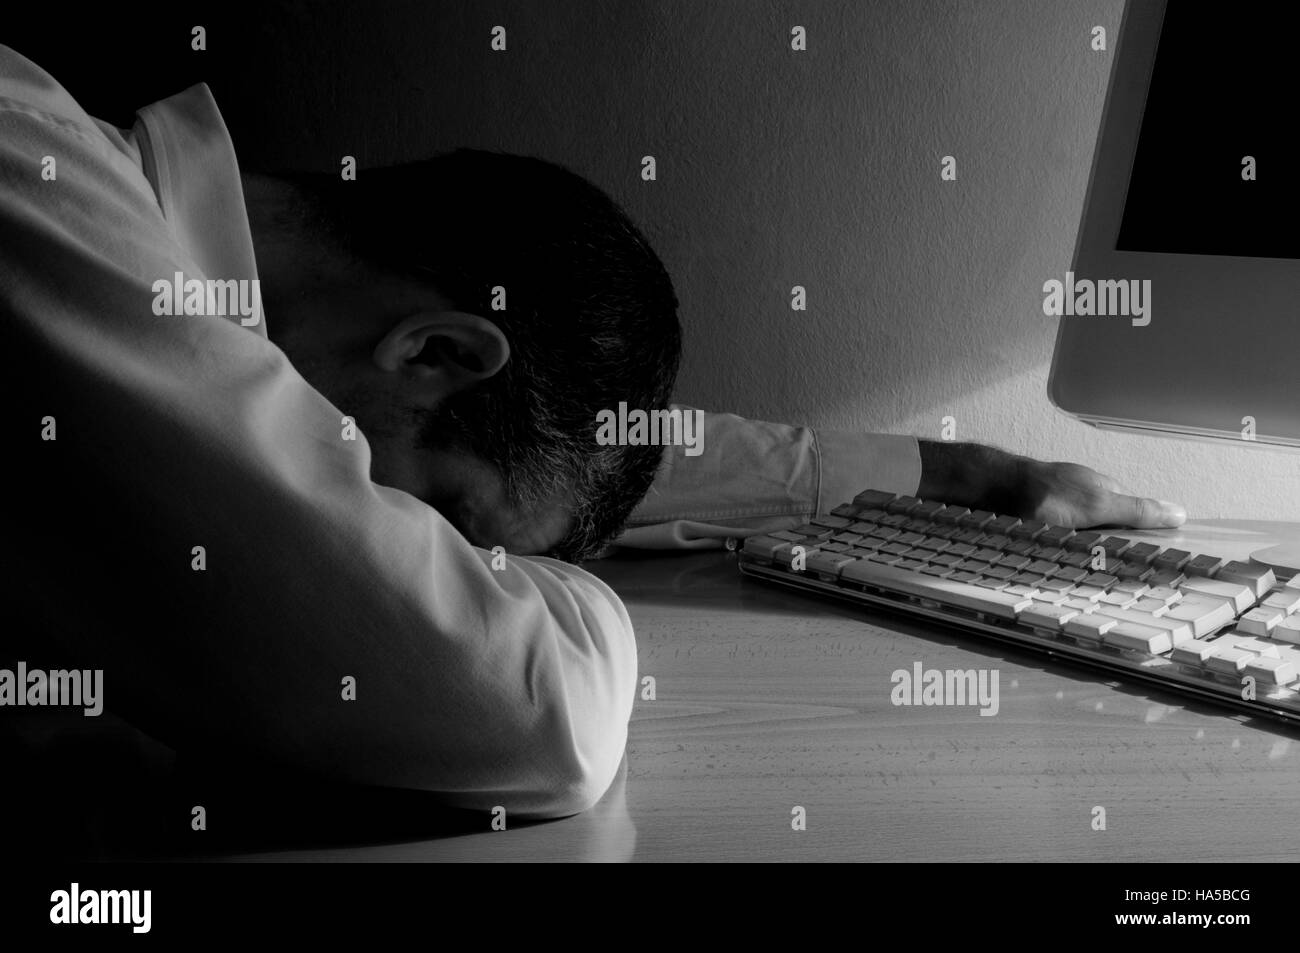 Depressed man at the computer. Black and white. - Stock Image